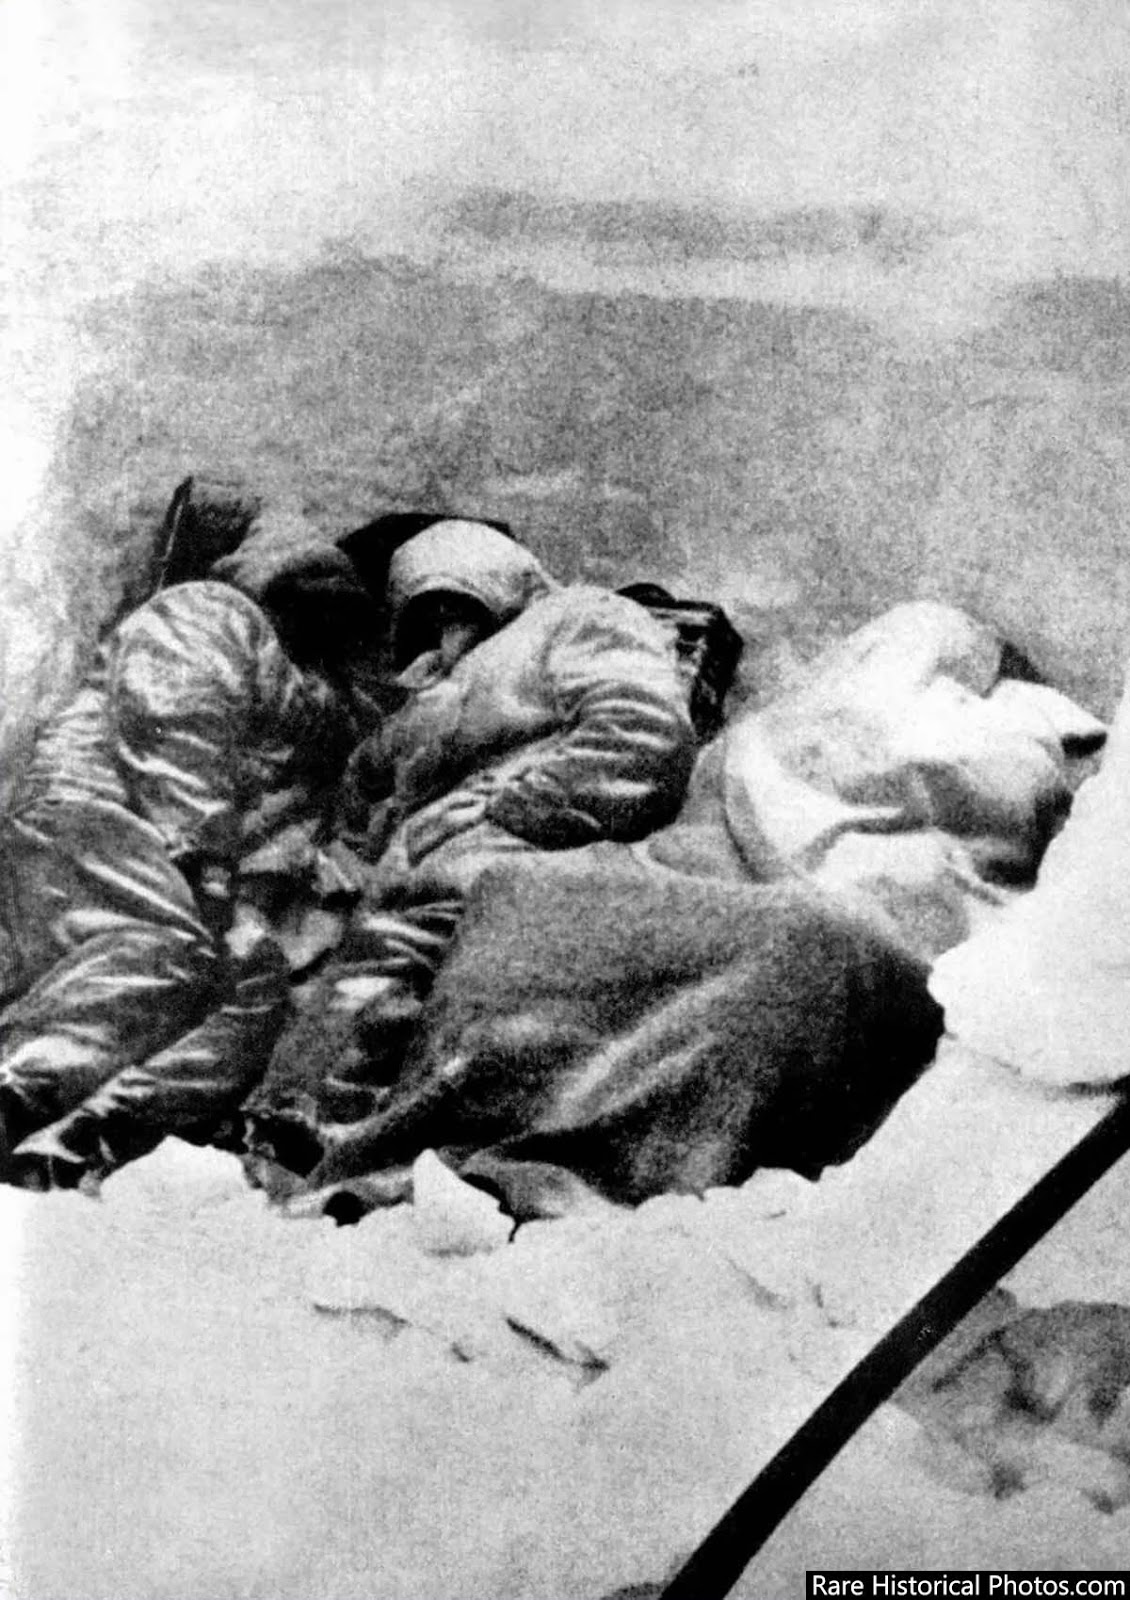 Dead frozen German soldiers in a trench at Stalingrad. February 1943.